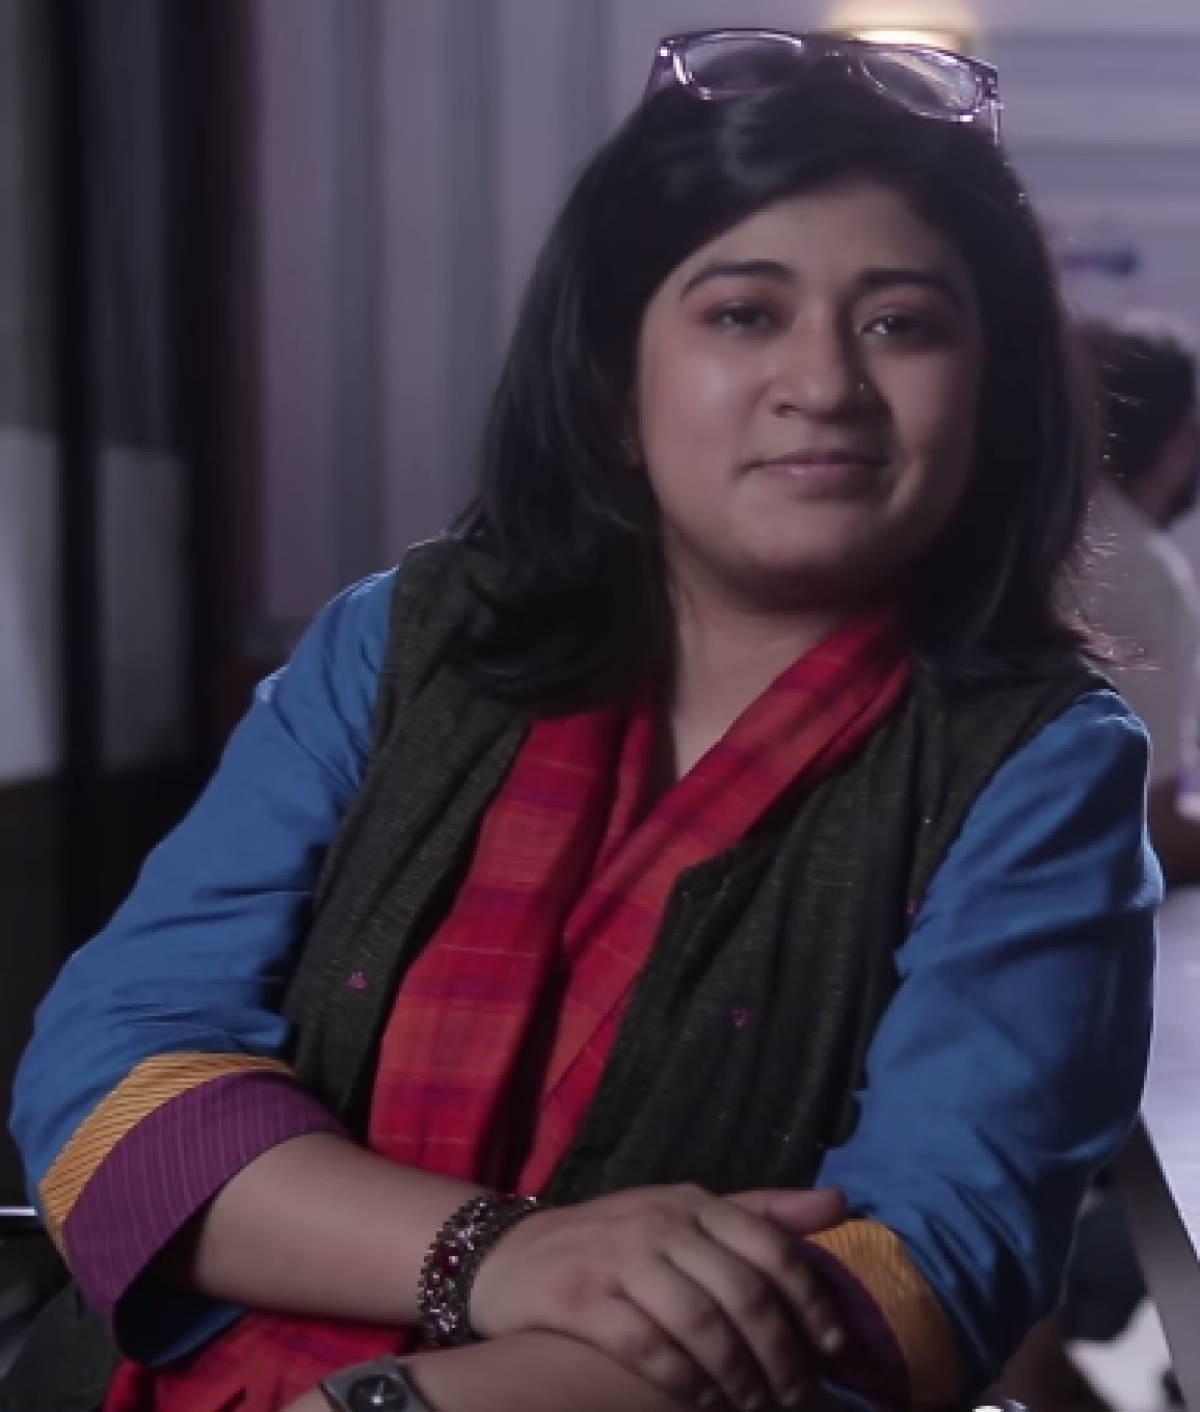 The Lawyer and the Comedian: Nidhi Bisht for #WorkingTitle